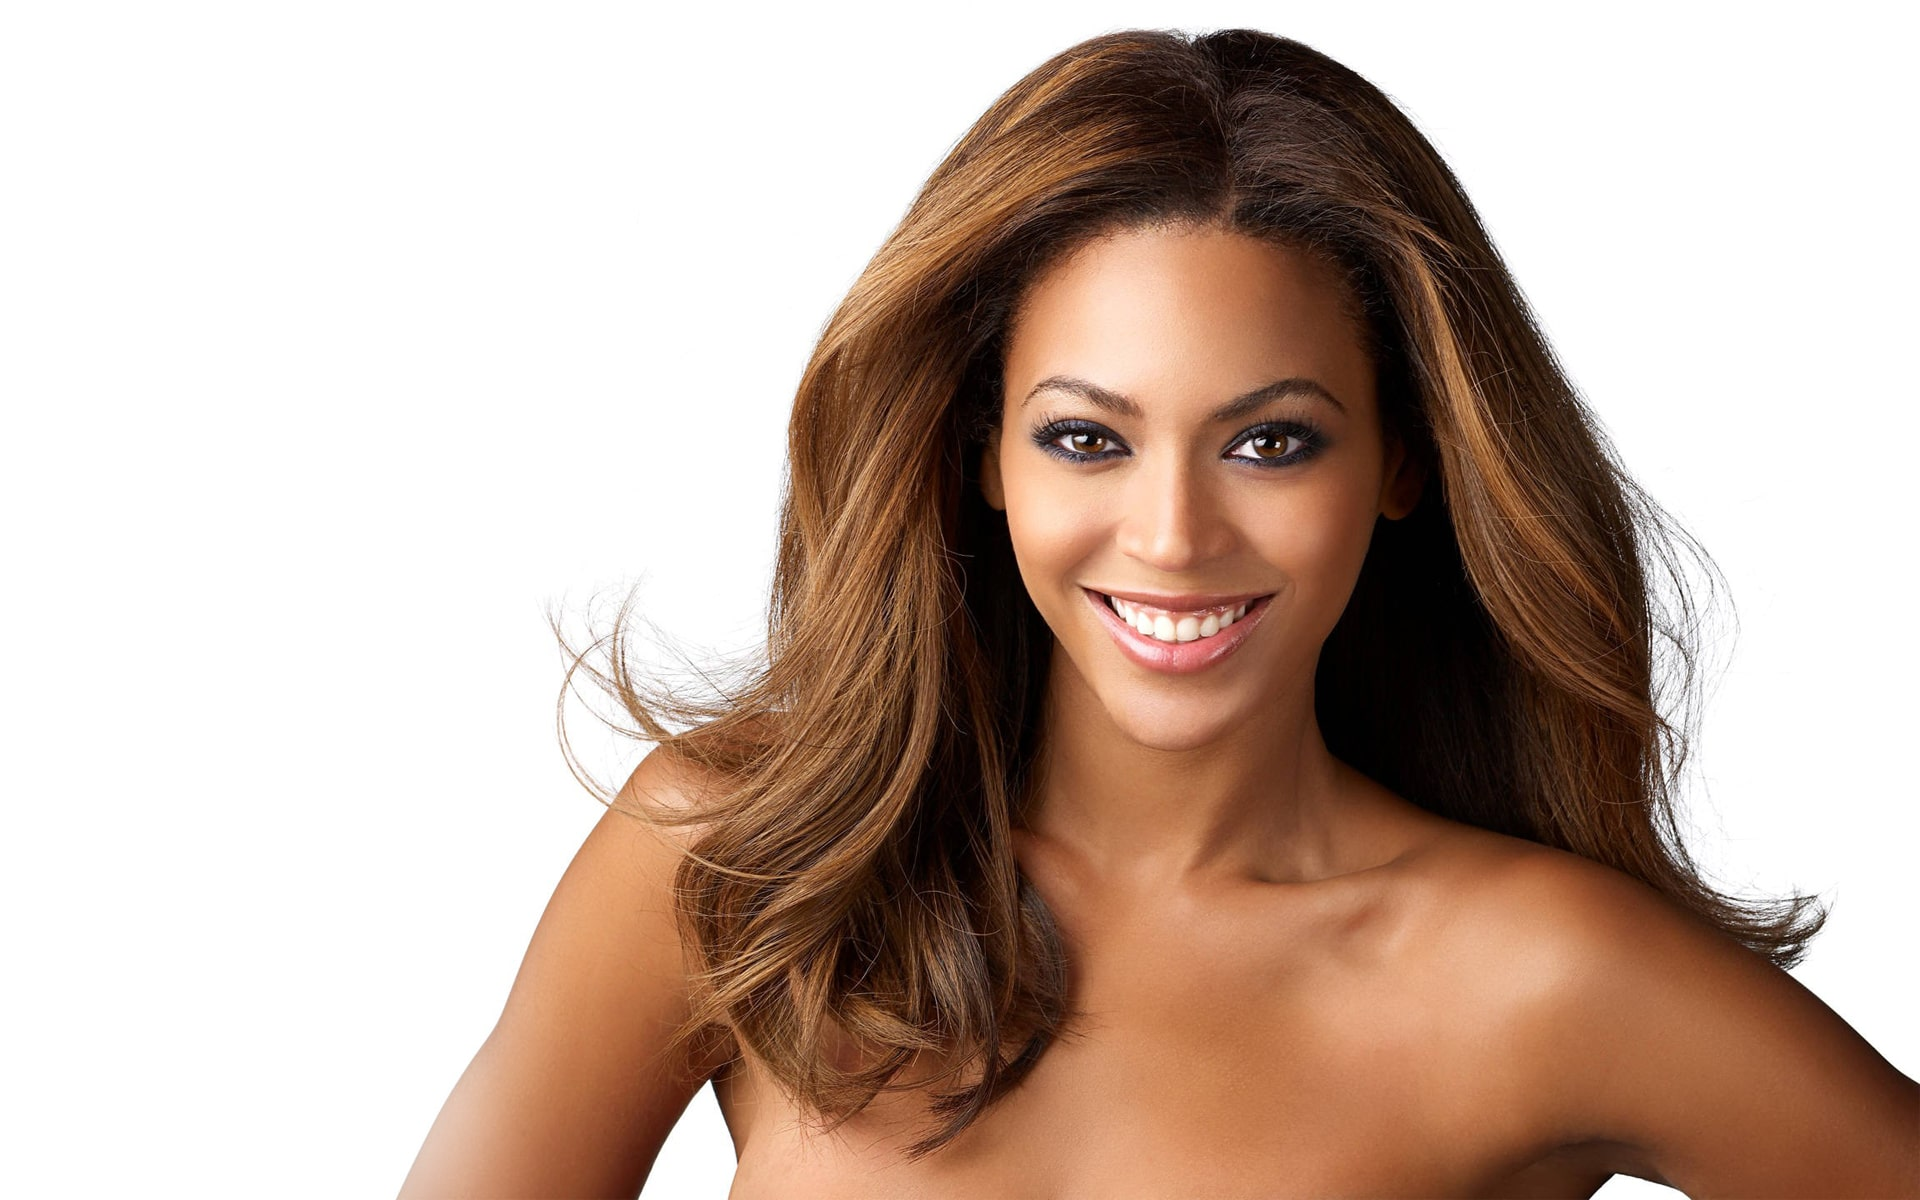 Beyonce Knowles Net Worth, Bio 2017-2016, Wiki - REVISED! - Richest ... Beyonce Knowles